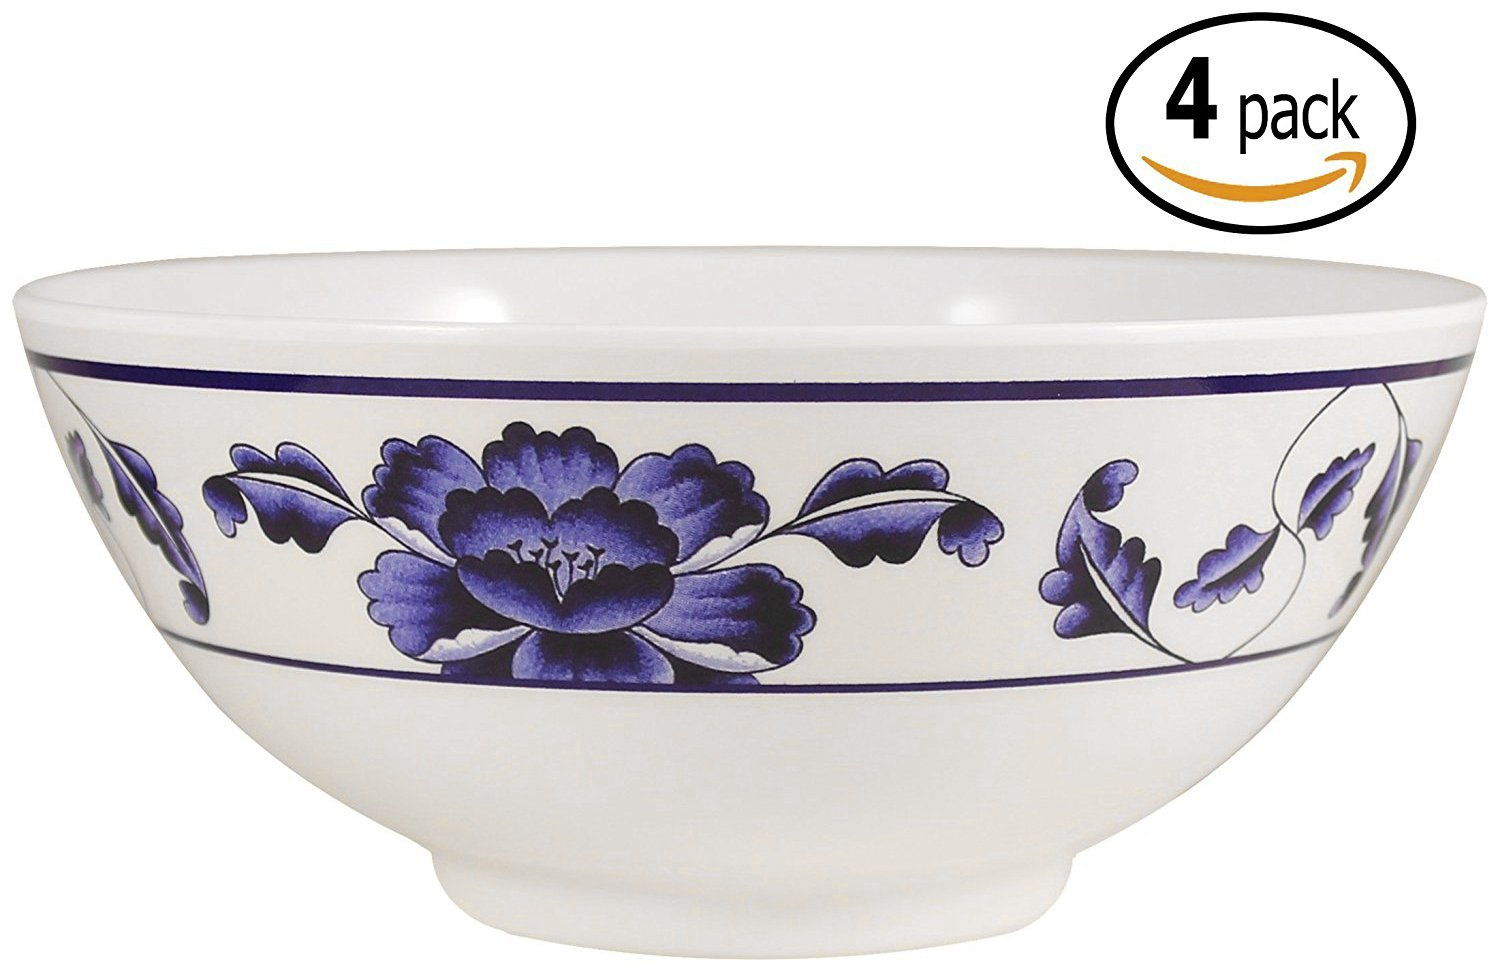 Melamine Soup / Rice Bowls with Pan Scraper, 56 Ounce, 8 Inch, Set of 4, Blue Lotus